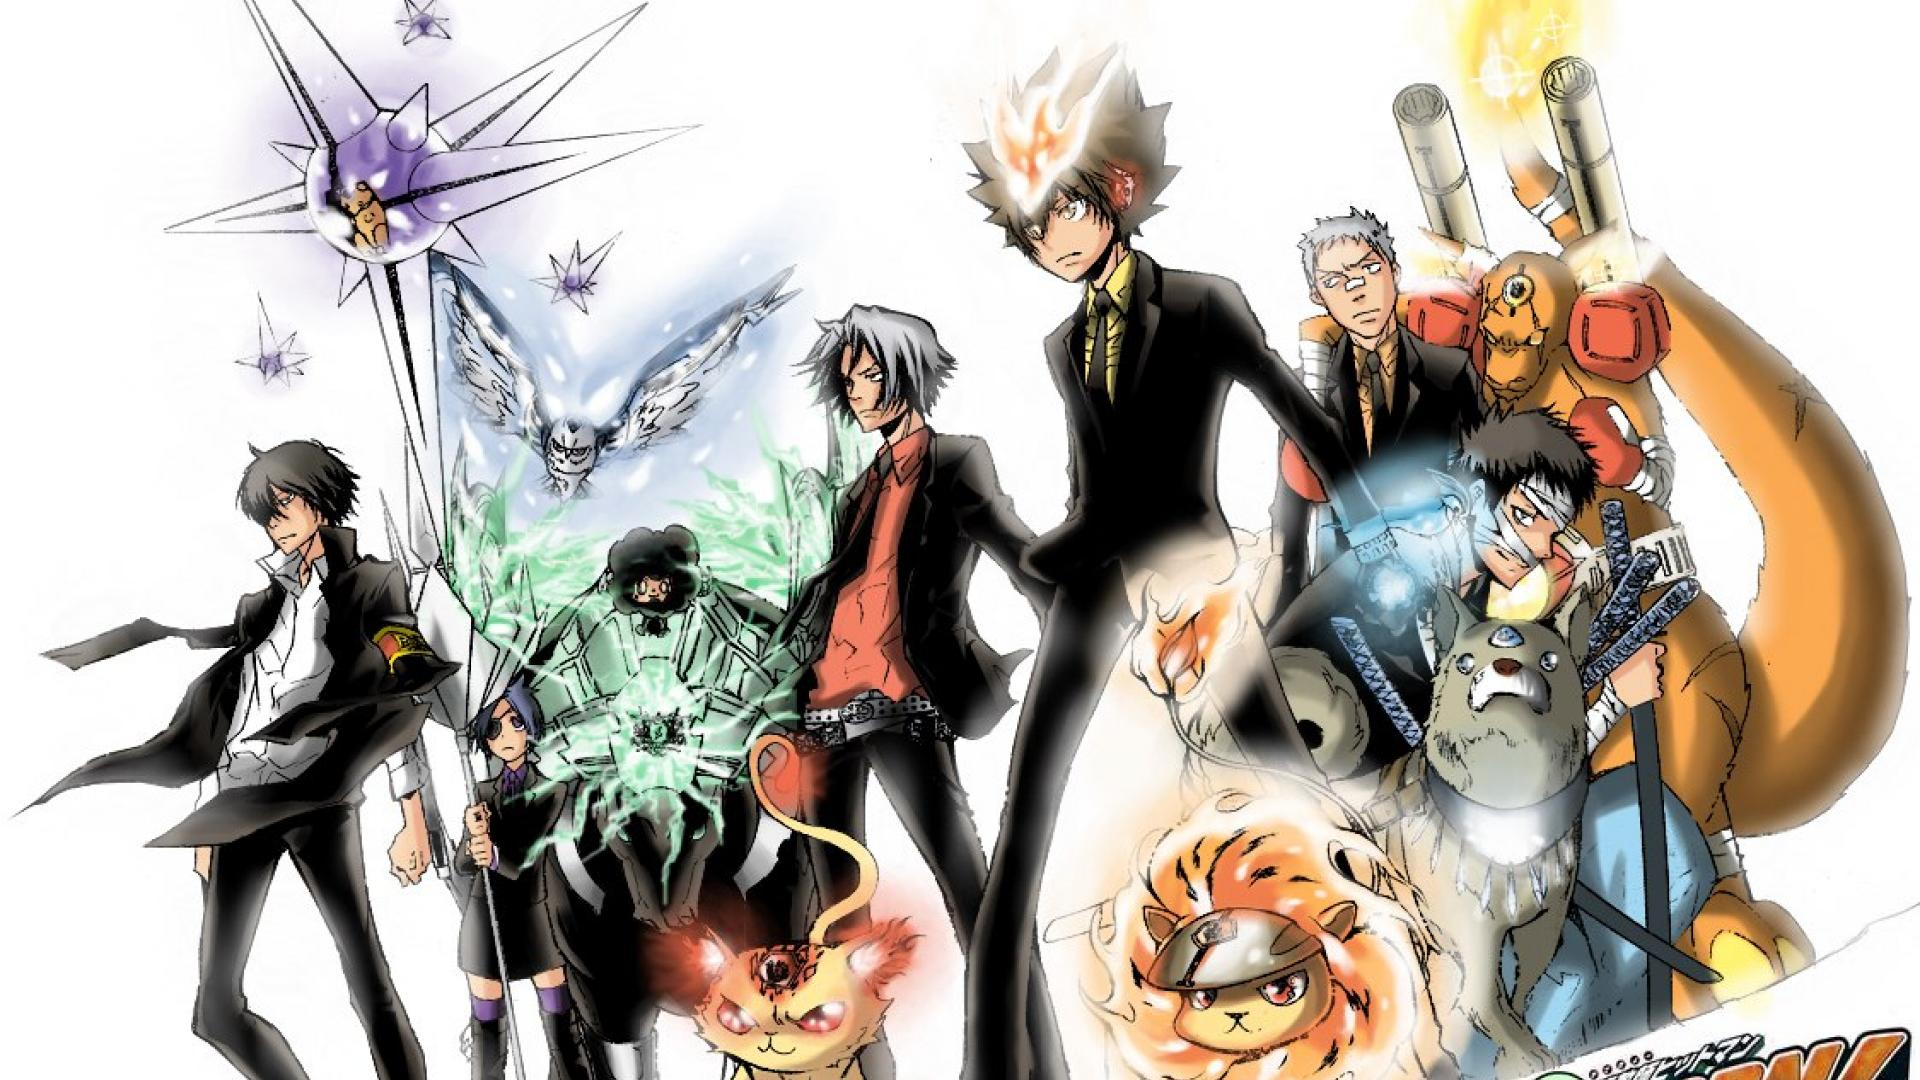 Hitman Reborn Wallpapers HD 1920x1080